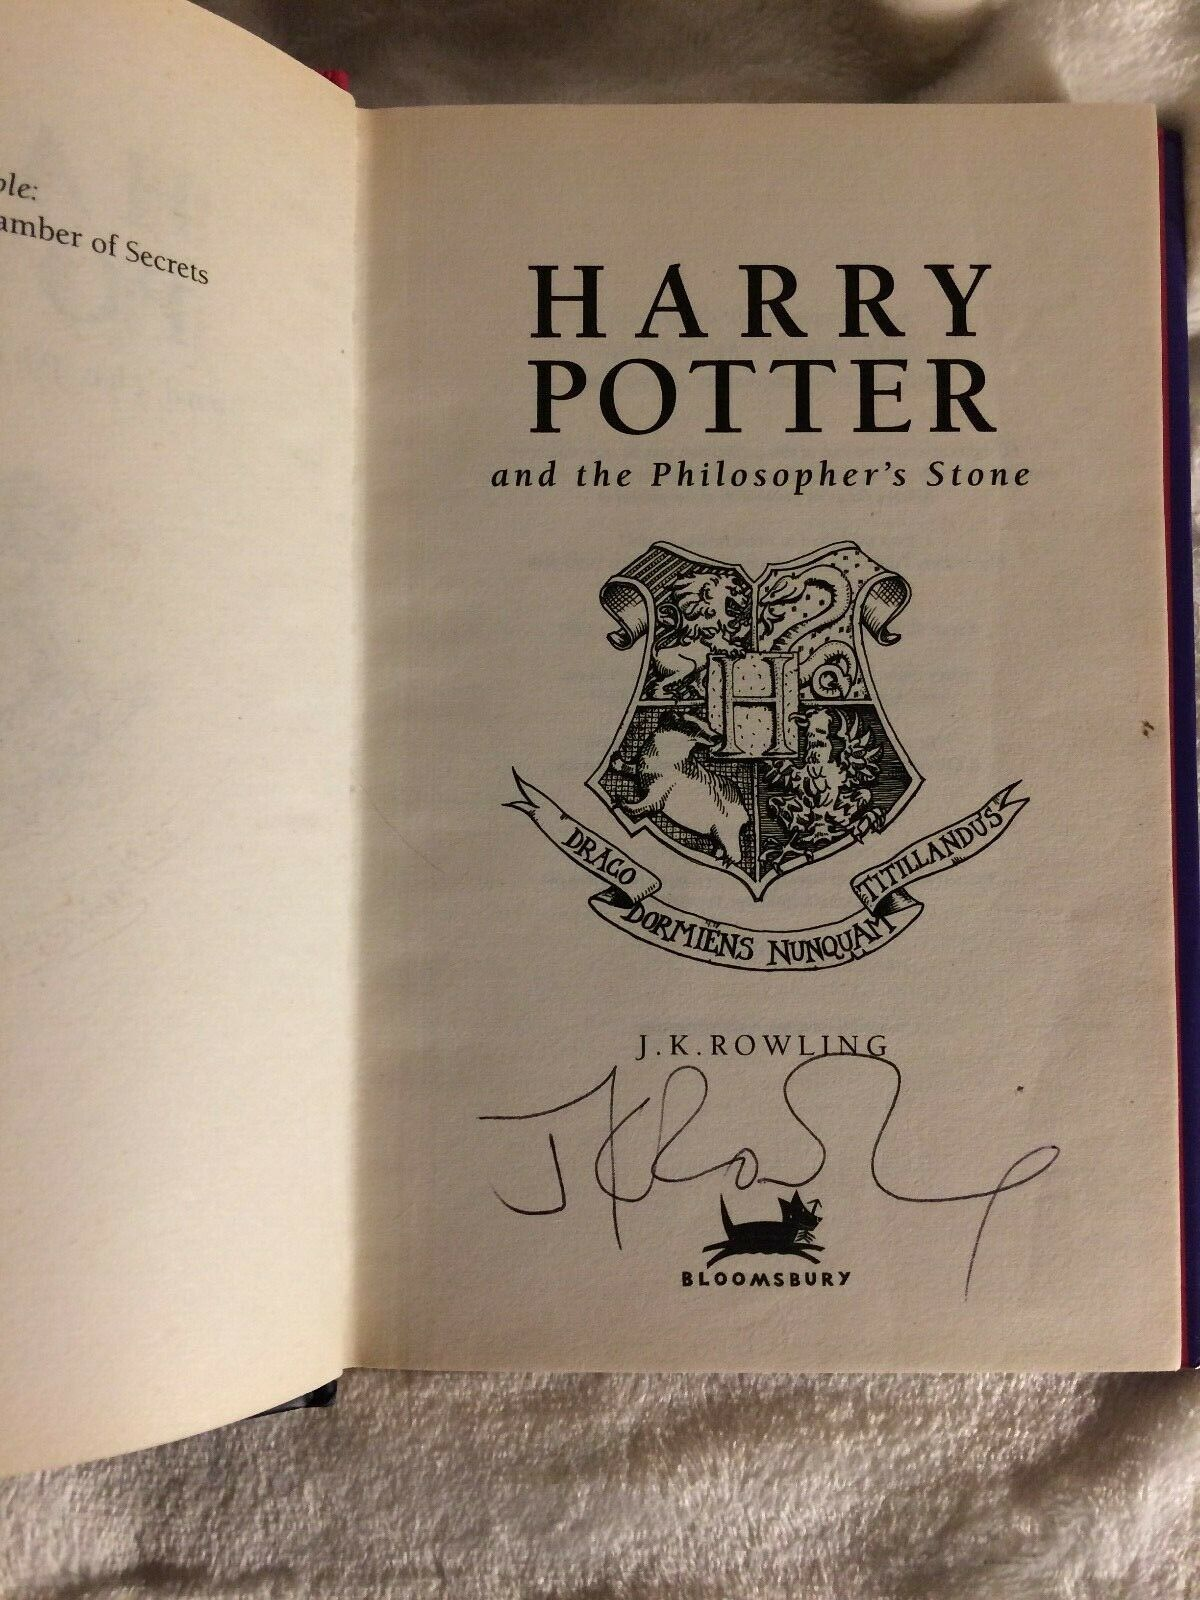 J.K. Rowling signature forgery found inside a Harry Potter and the Philosopher's Stone. SOld by MColes78 on eBay.